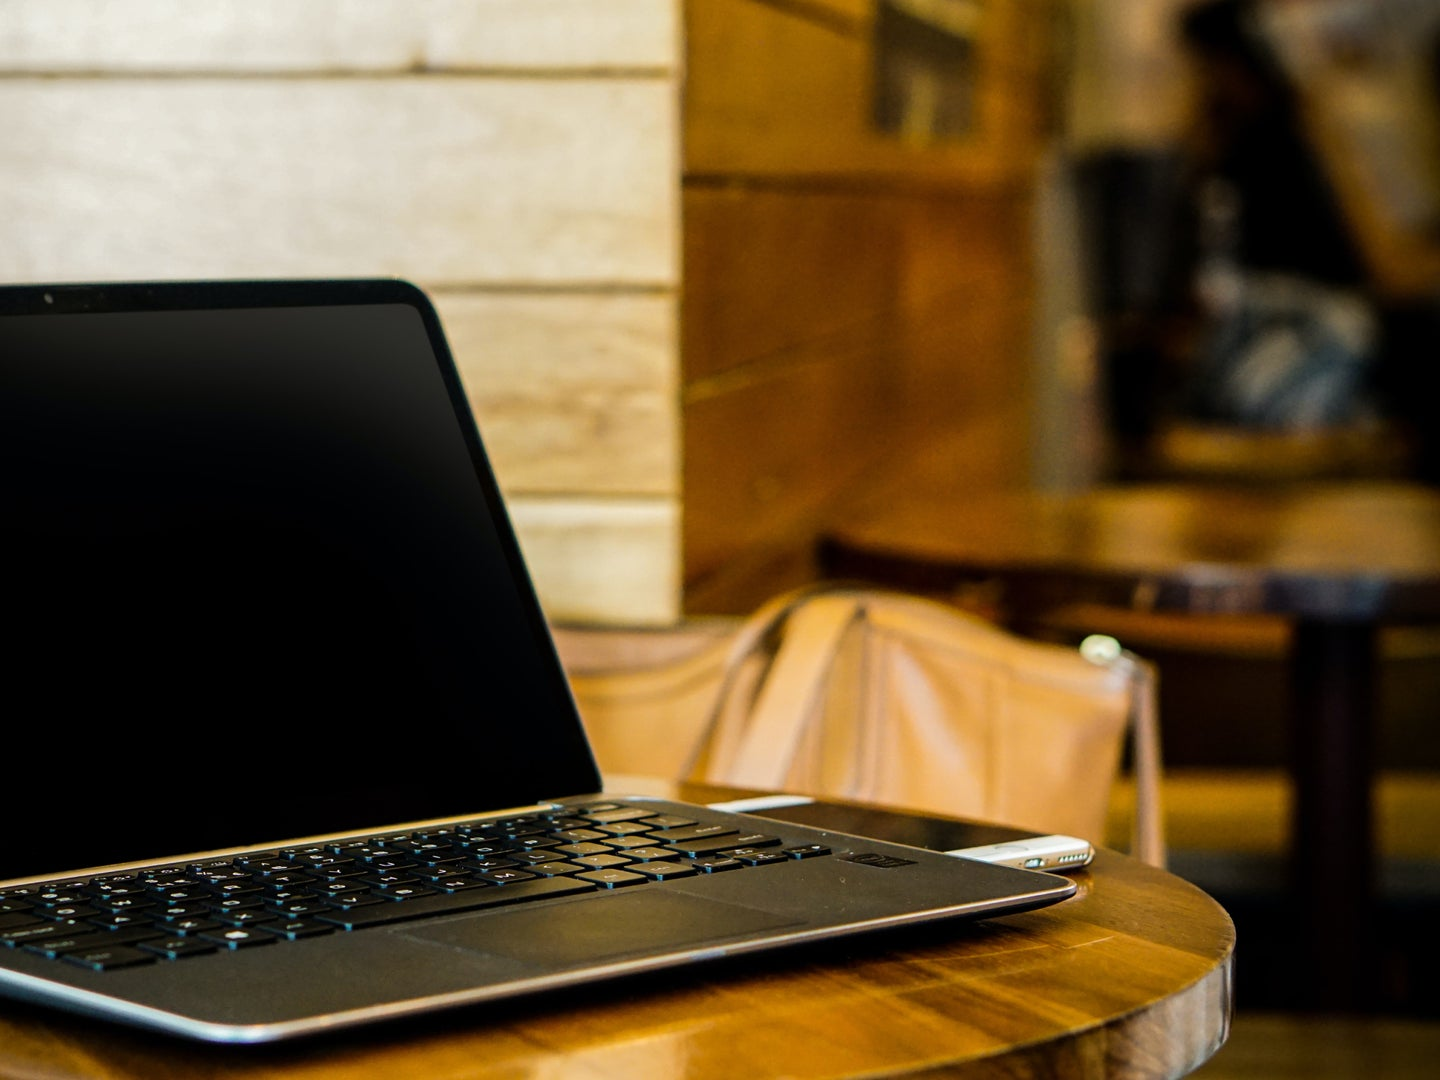 An unattended laptop at a coffee shop.